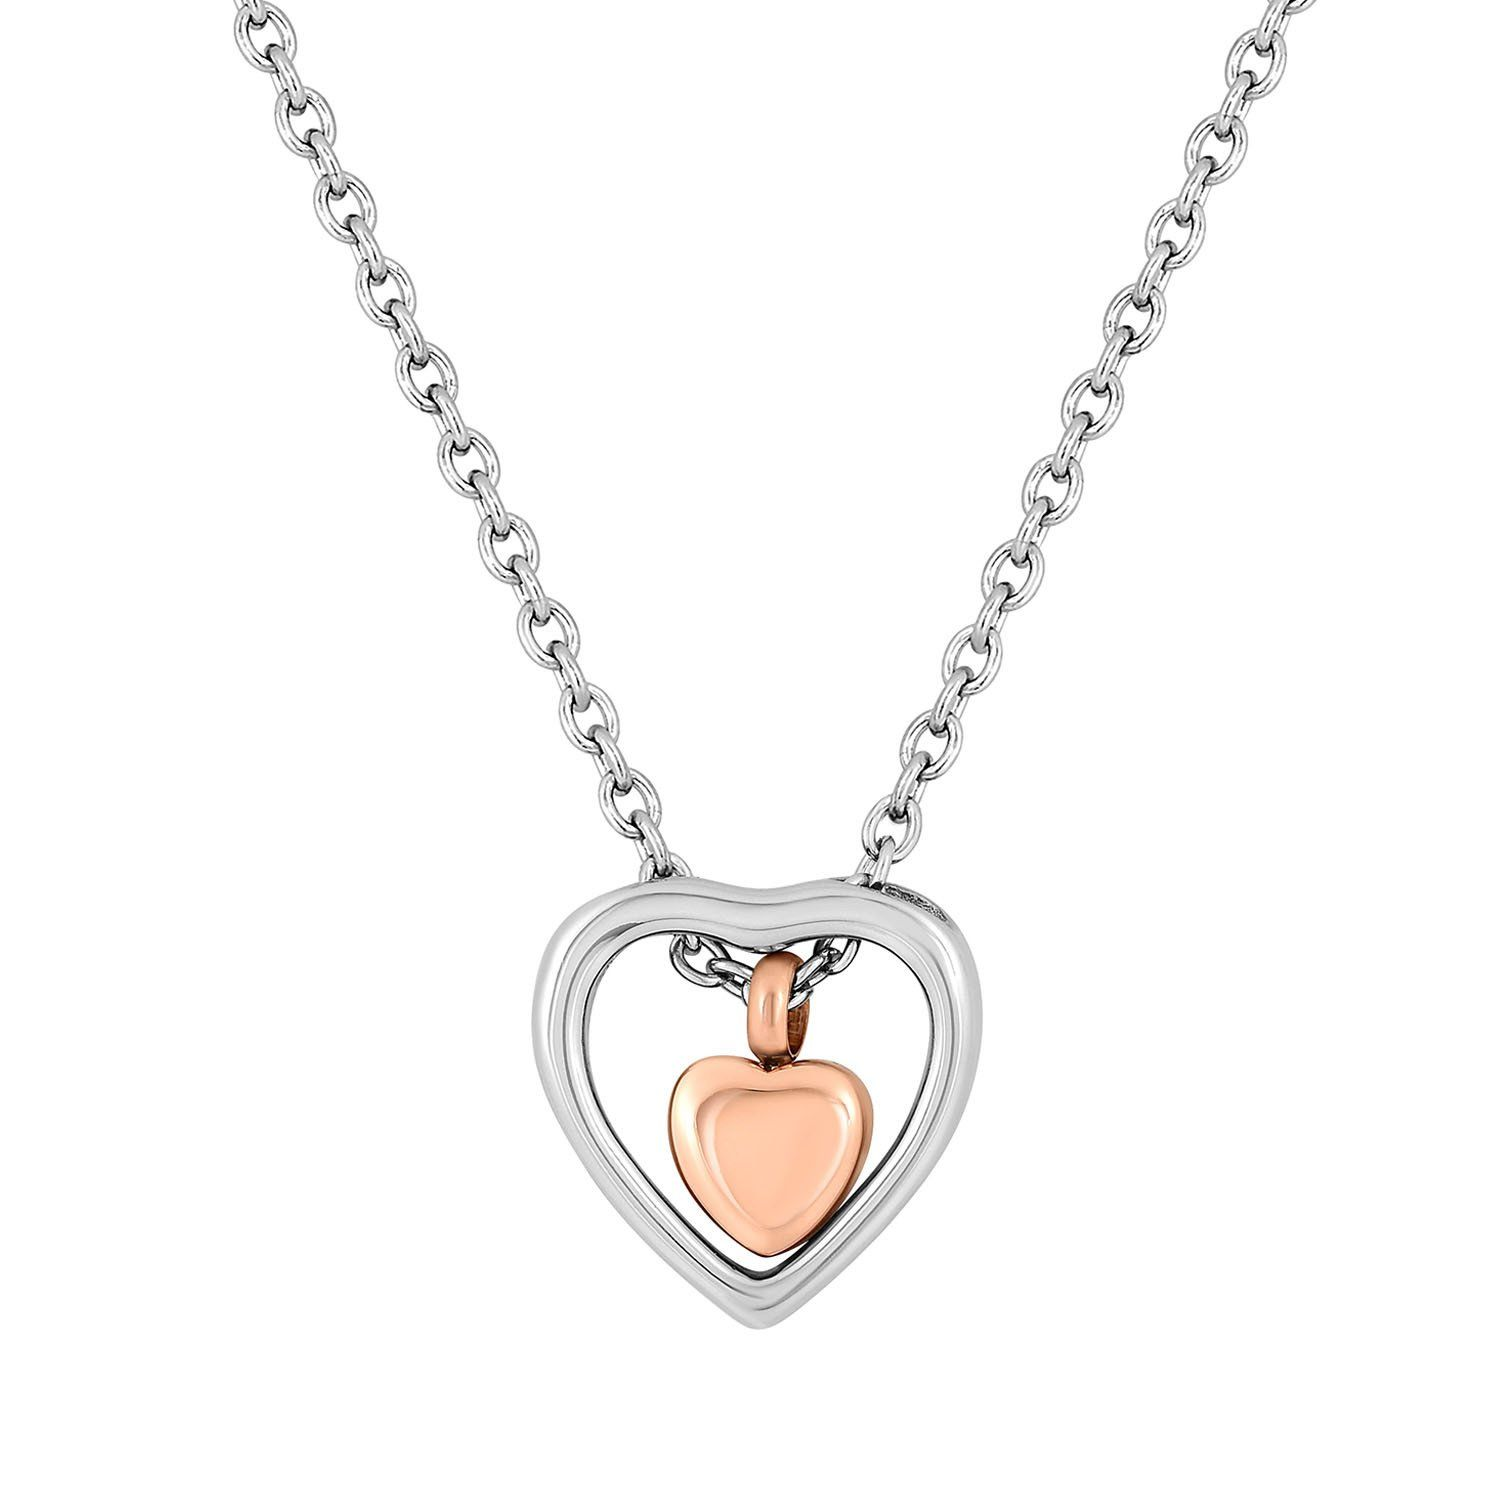 Cremation Jewelry Necklace for Ashes - Double Hearts